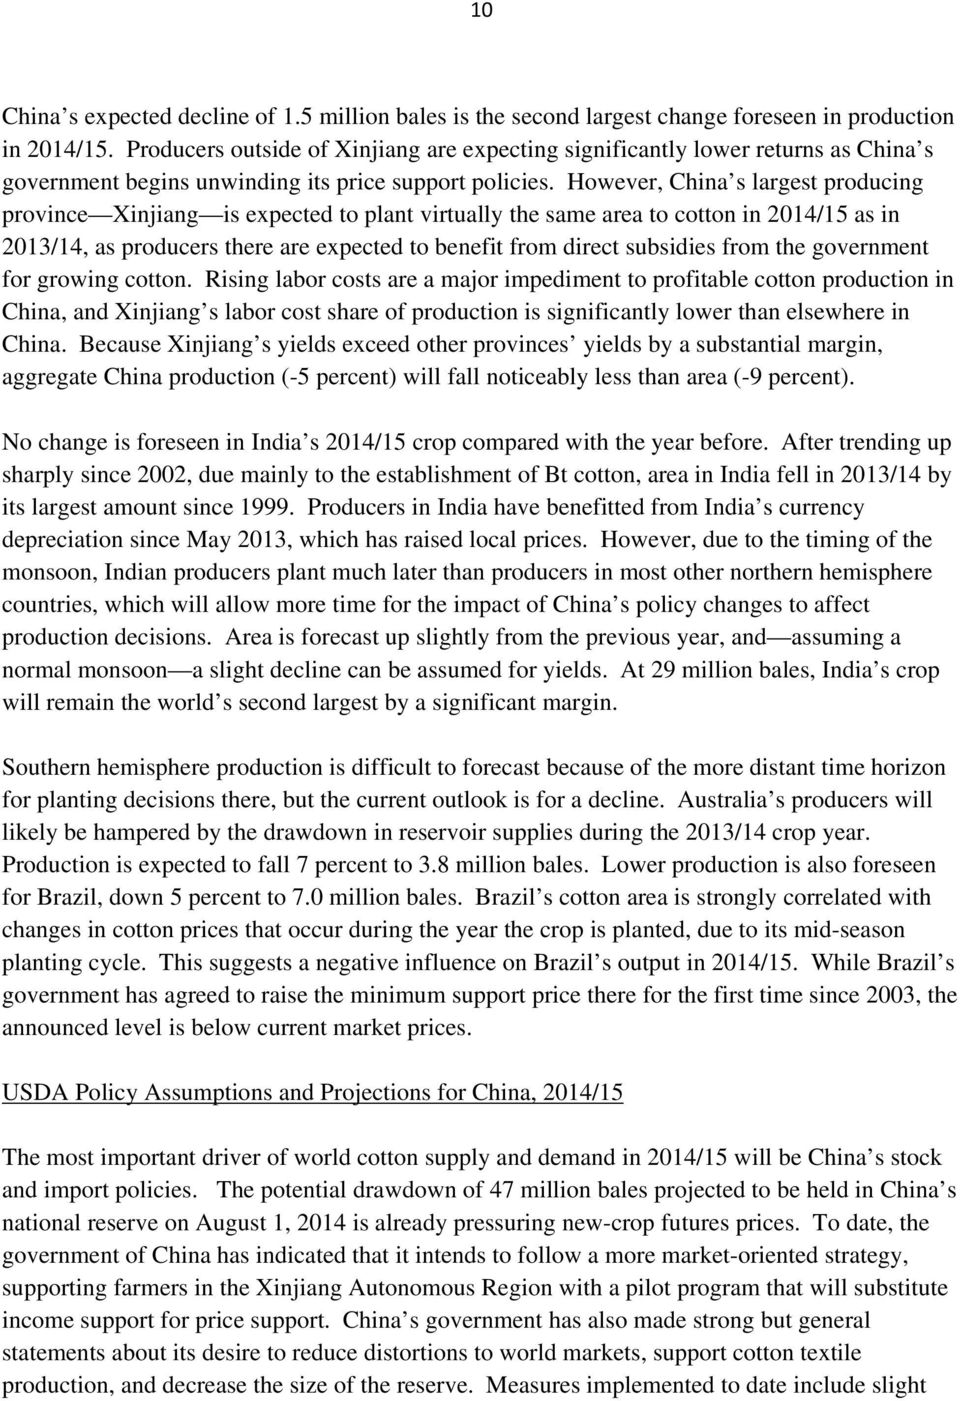 However, China s largest producing province Xinjiang is expected to plant virtually the same area to cotton in 2014/15 as in 2013/14, as producers there are expected to benefit from direct subsidies